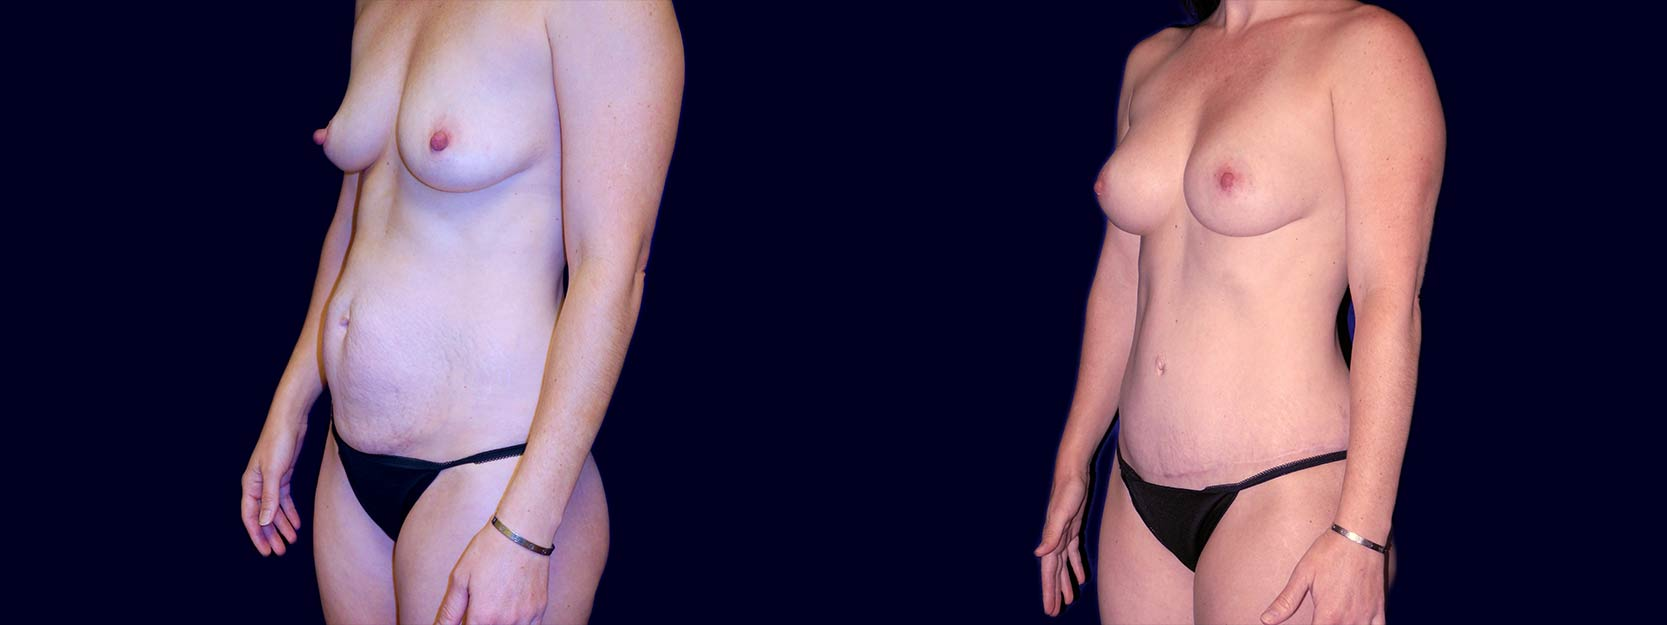 Left 3/4 View - Breast Augmentation and Tummy Tuck After Pregnancy